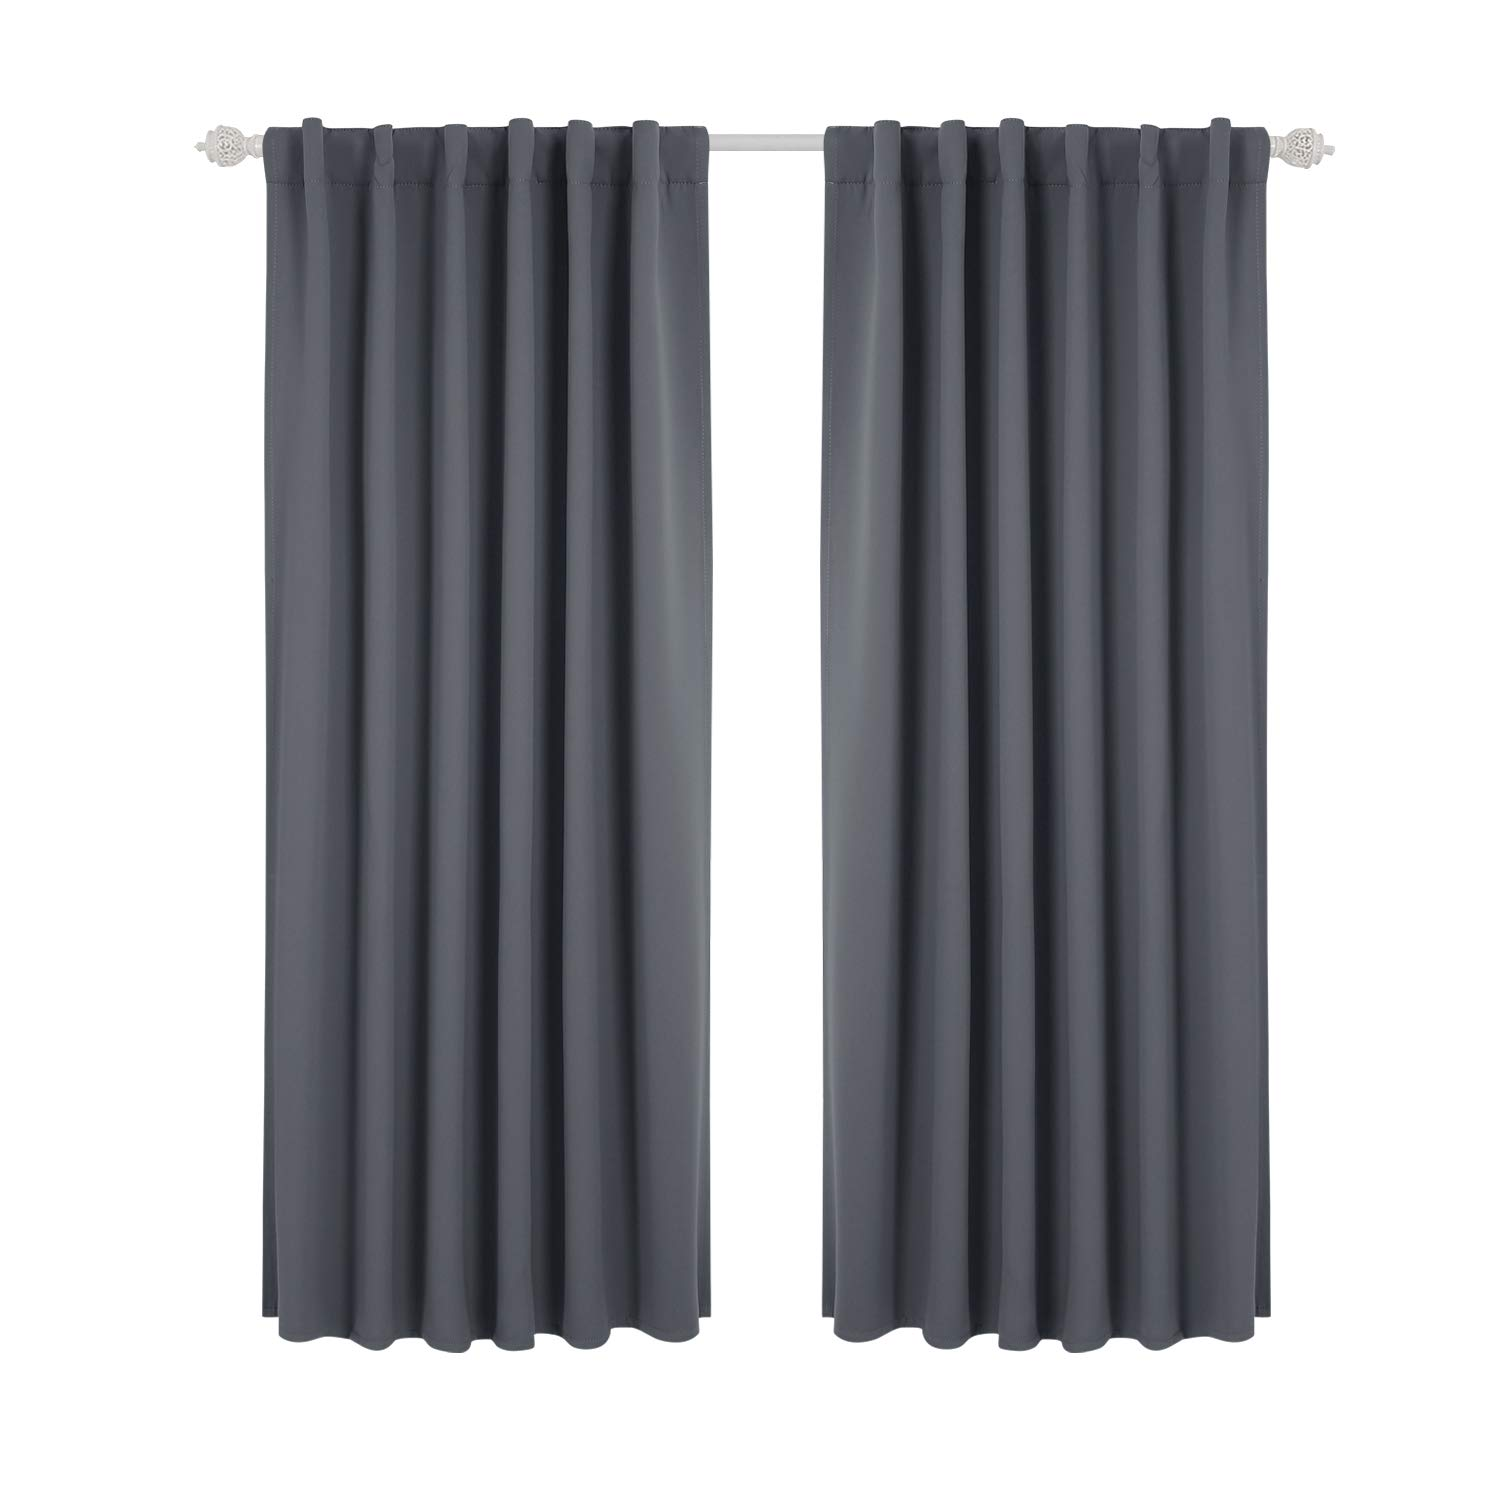 Deconovo Solid Back Tab and Rod Pocket Curtains Thermal Insulated Blackout Window Curtains for Kitchen 52x54 Inch Dark Grey 2 Panels